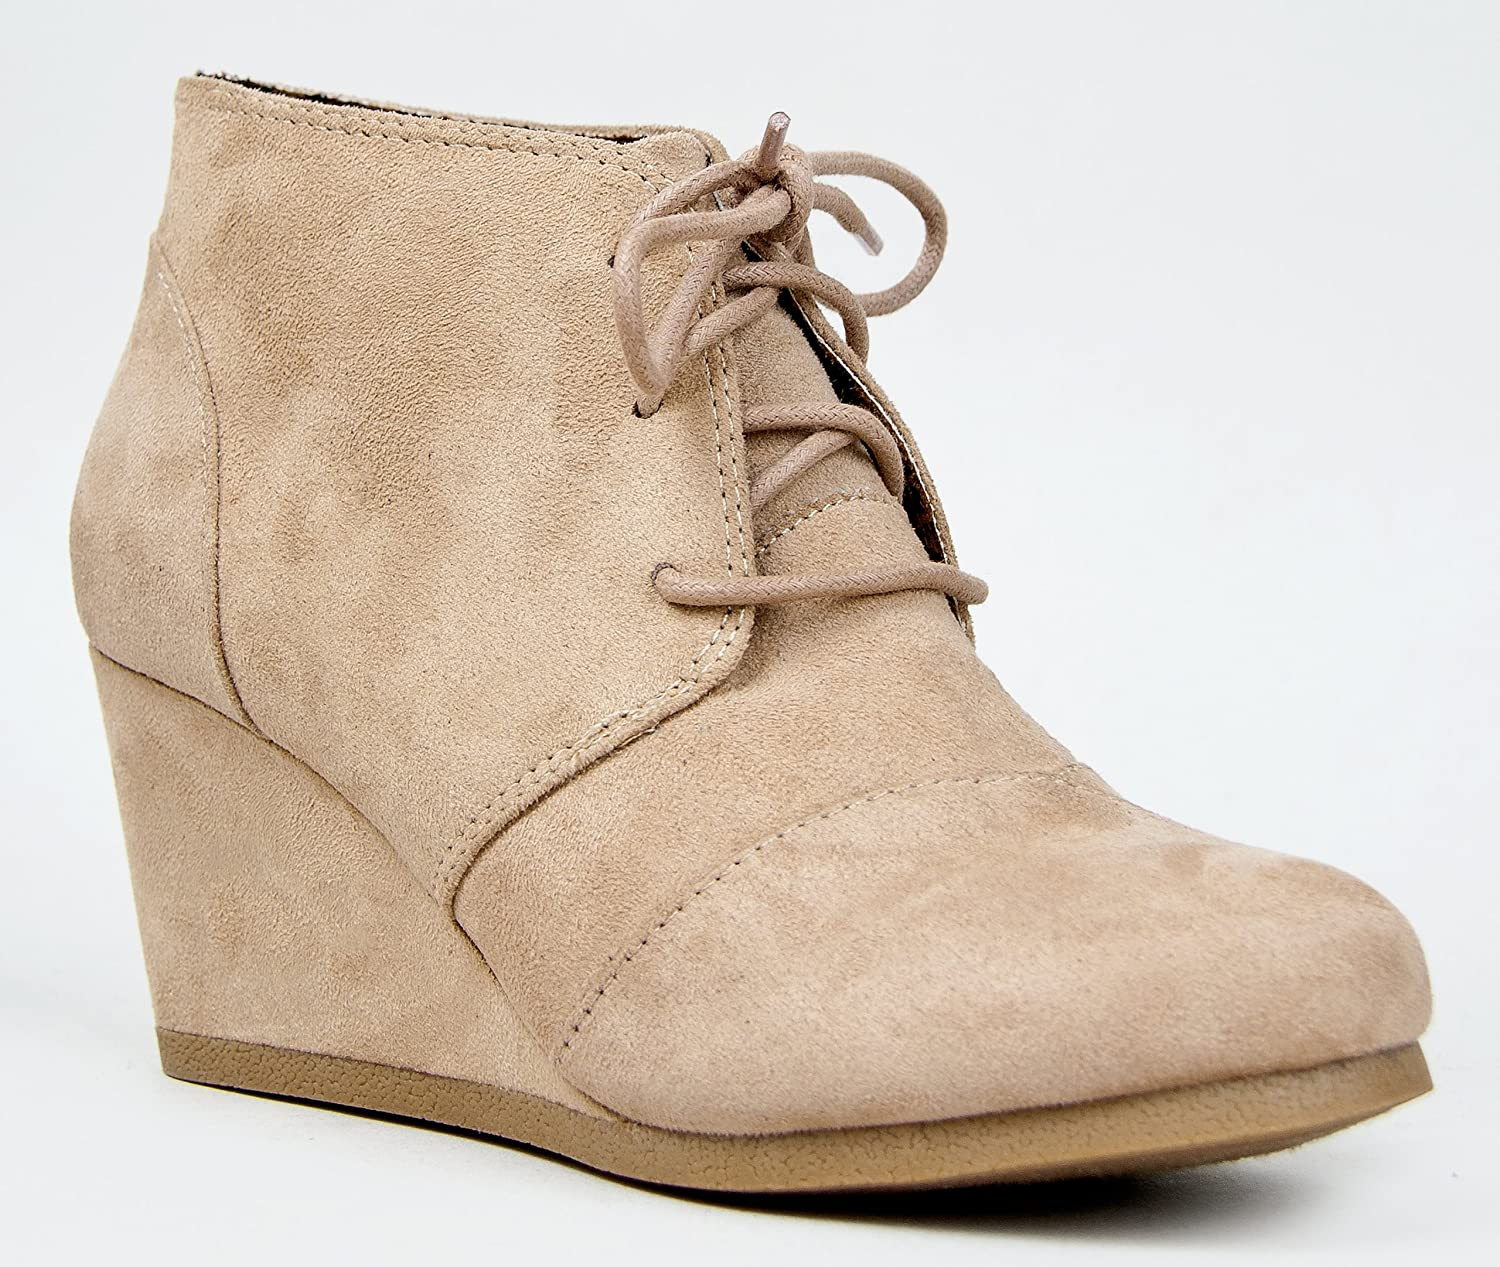 Rex Lace Up Ankle Bootie Wedge,Taupe Isu,7.5